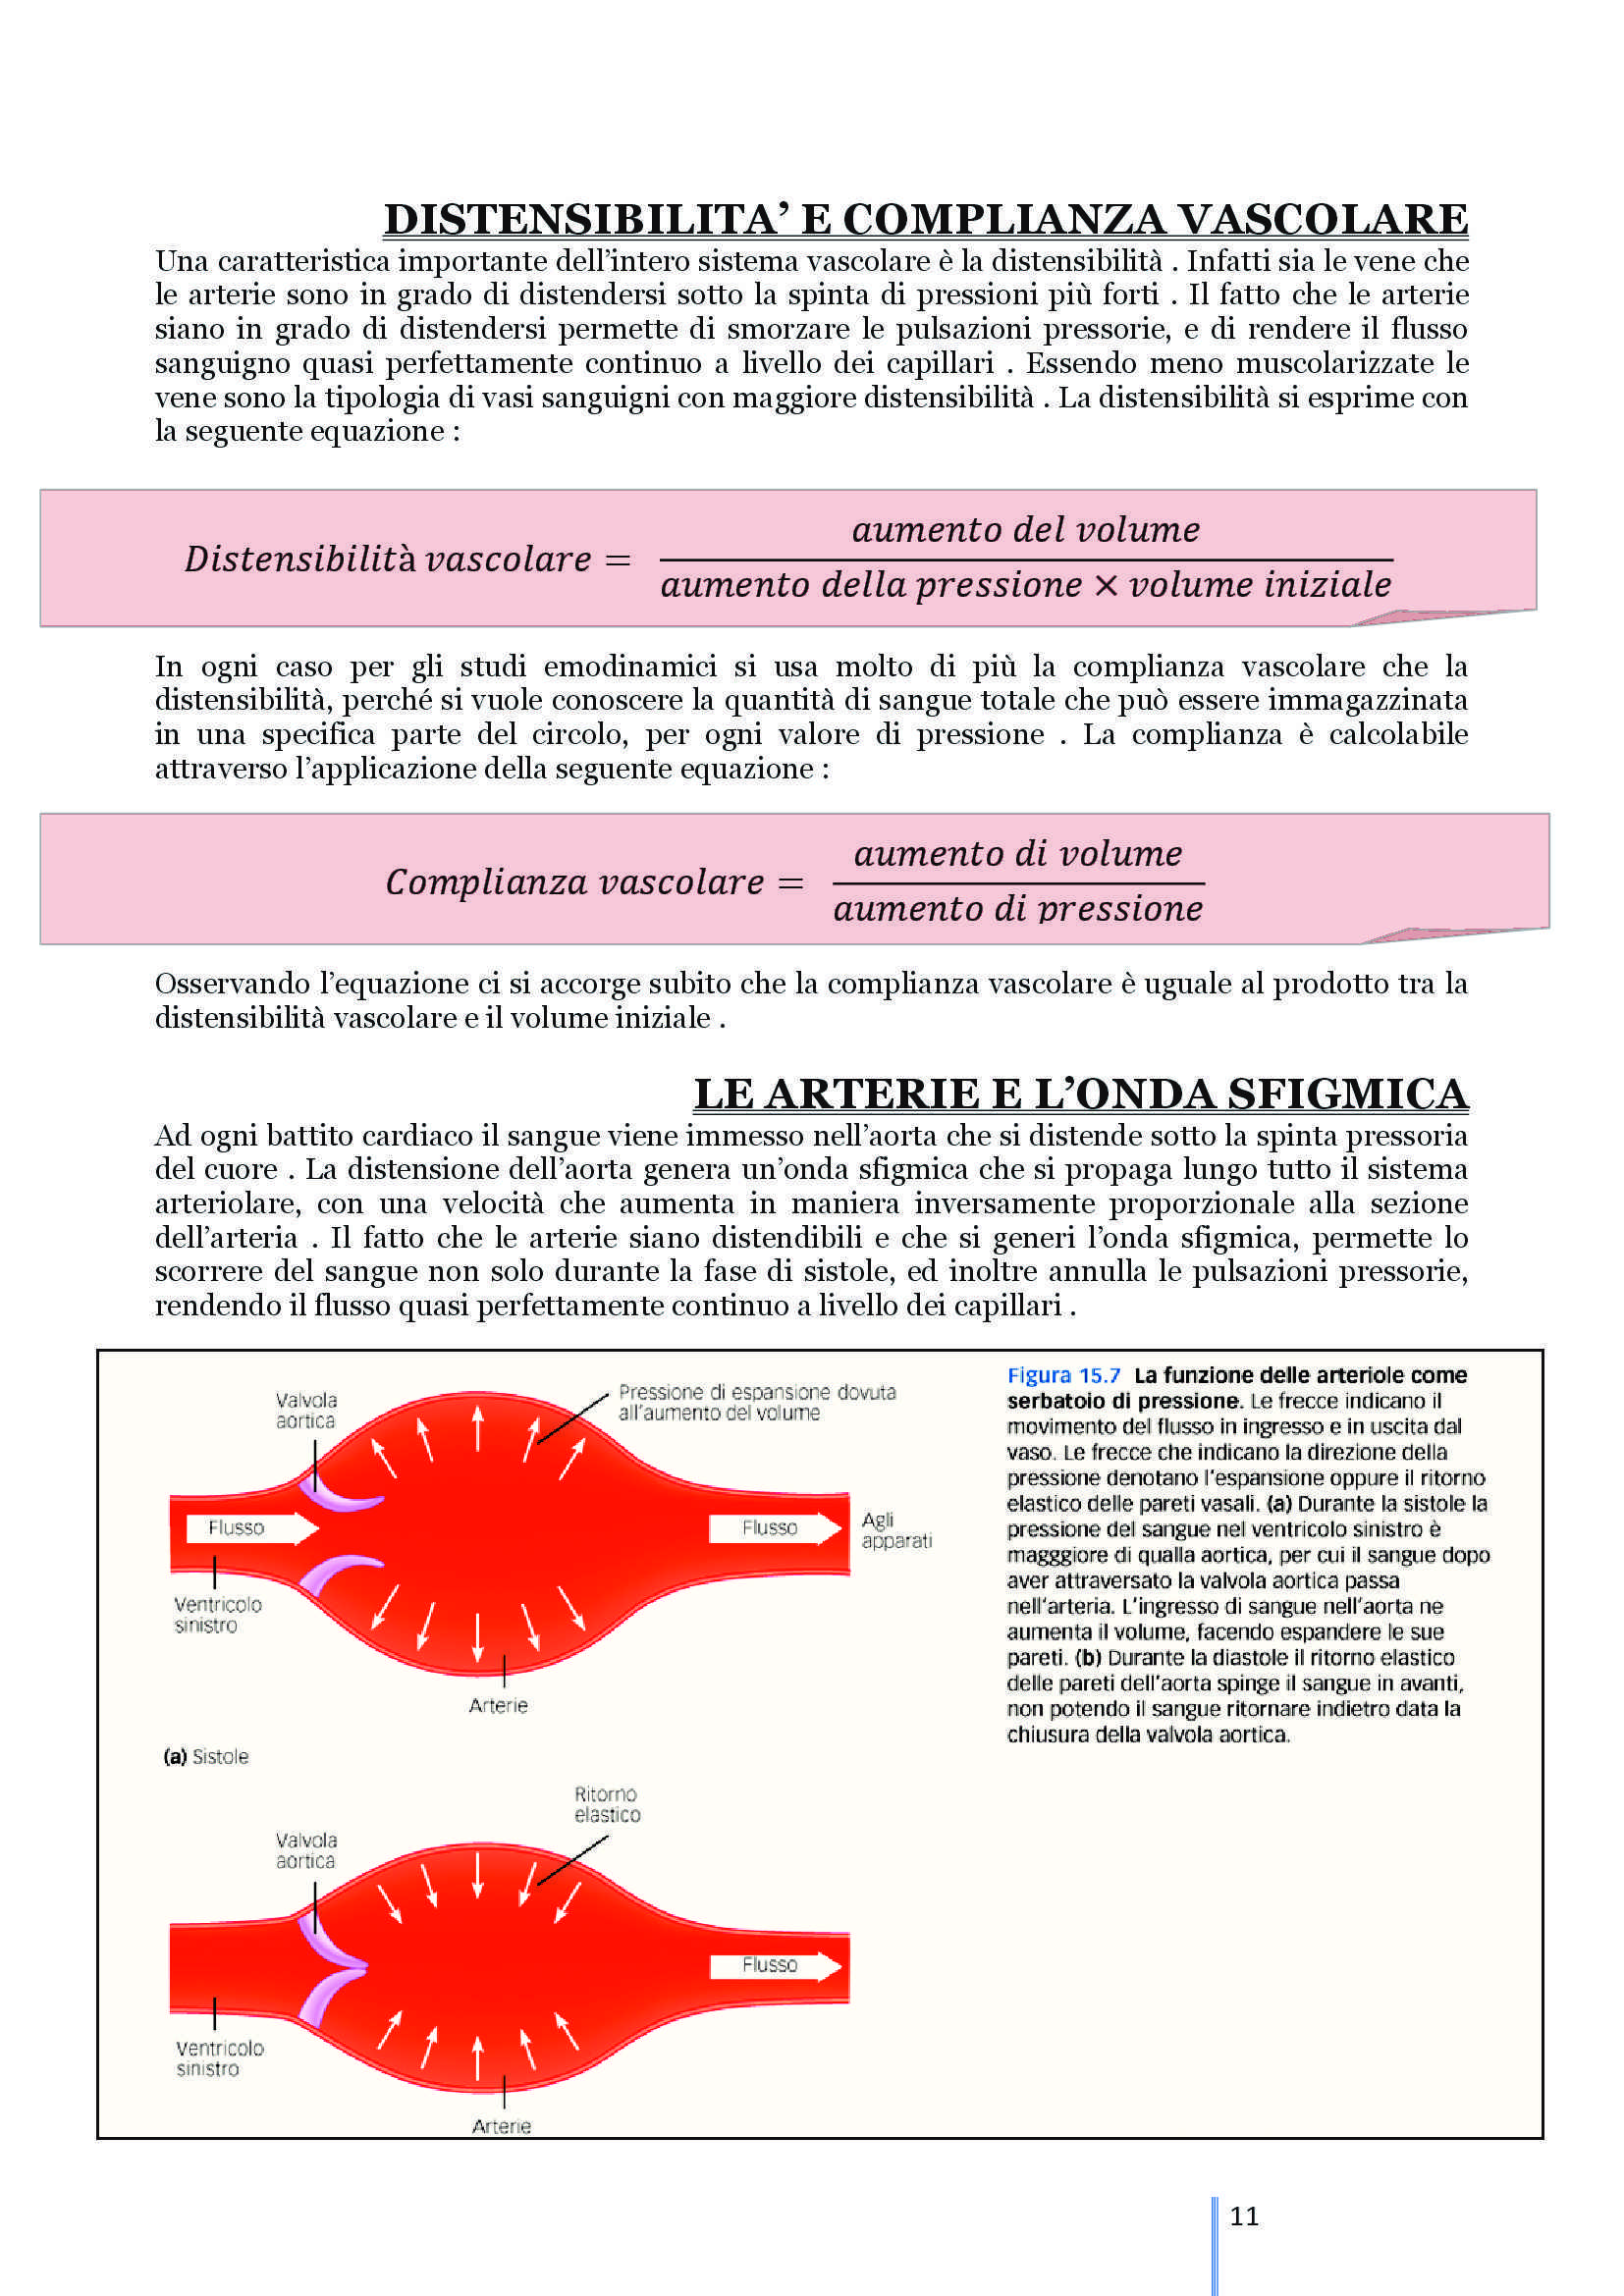 Fisiologia 2 - Appunti Pag. 11